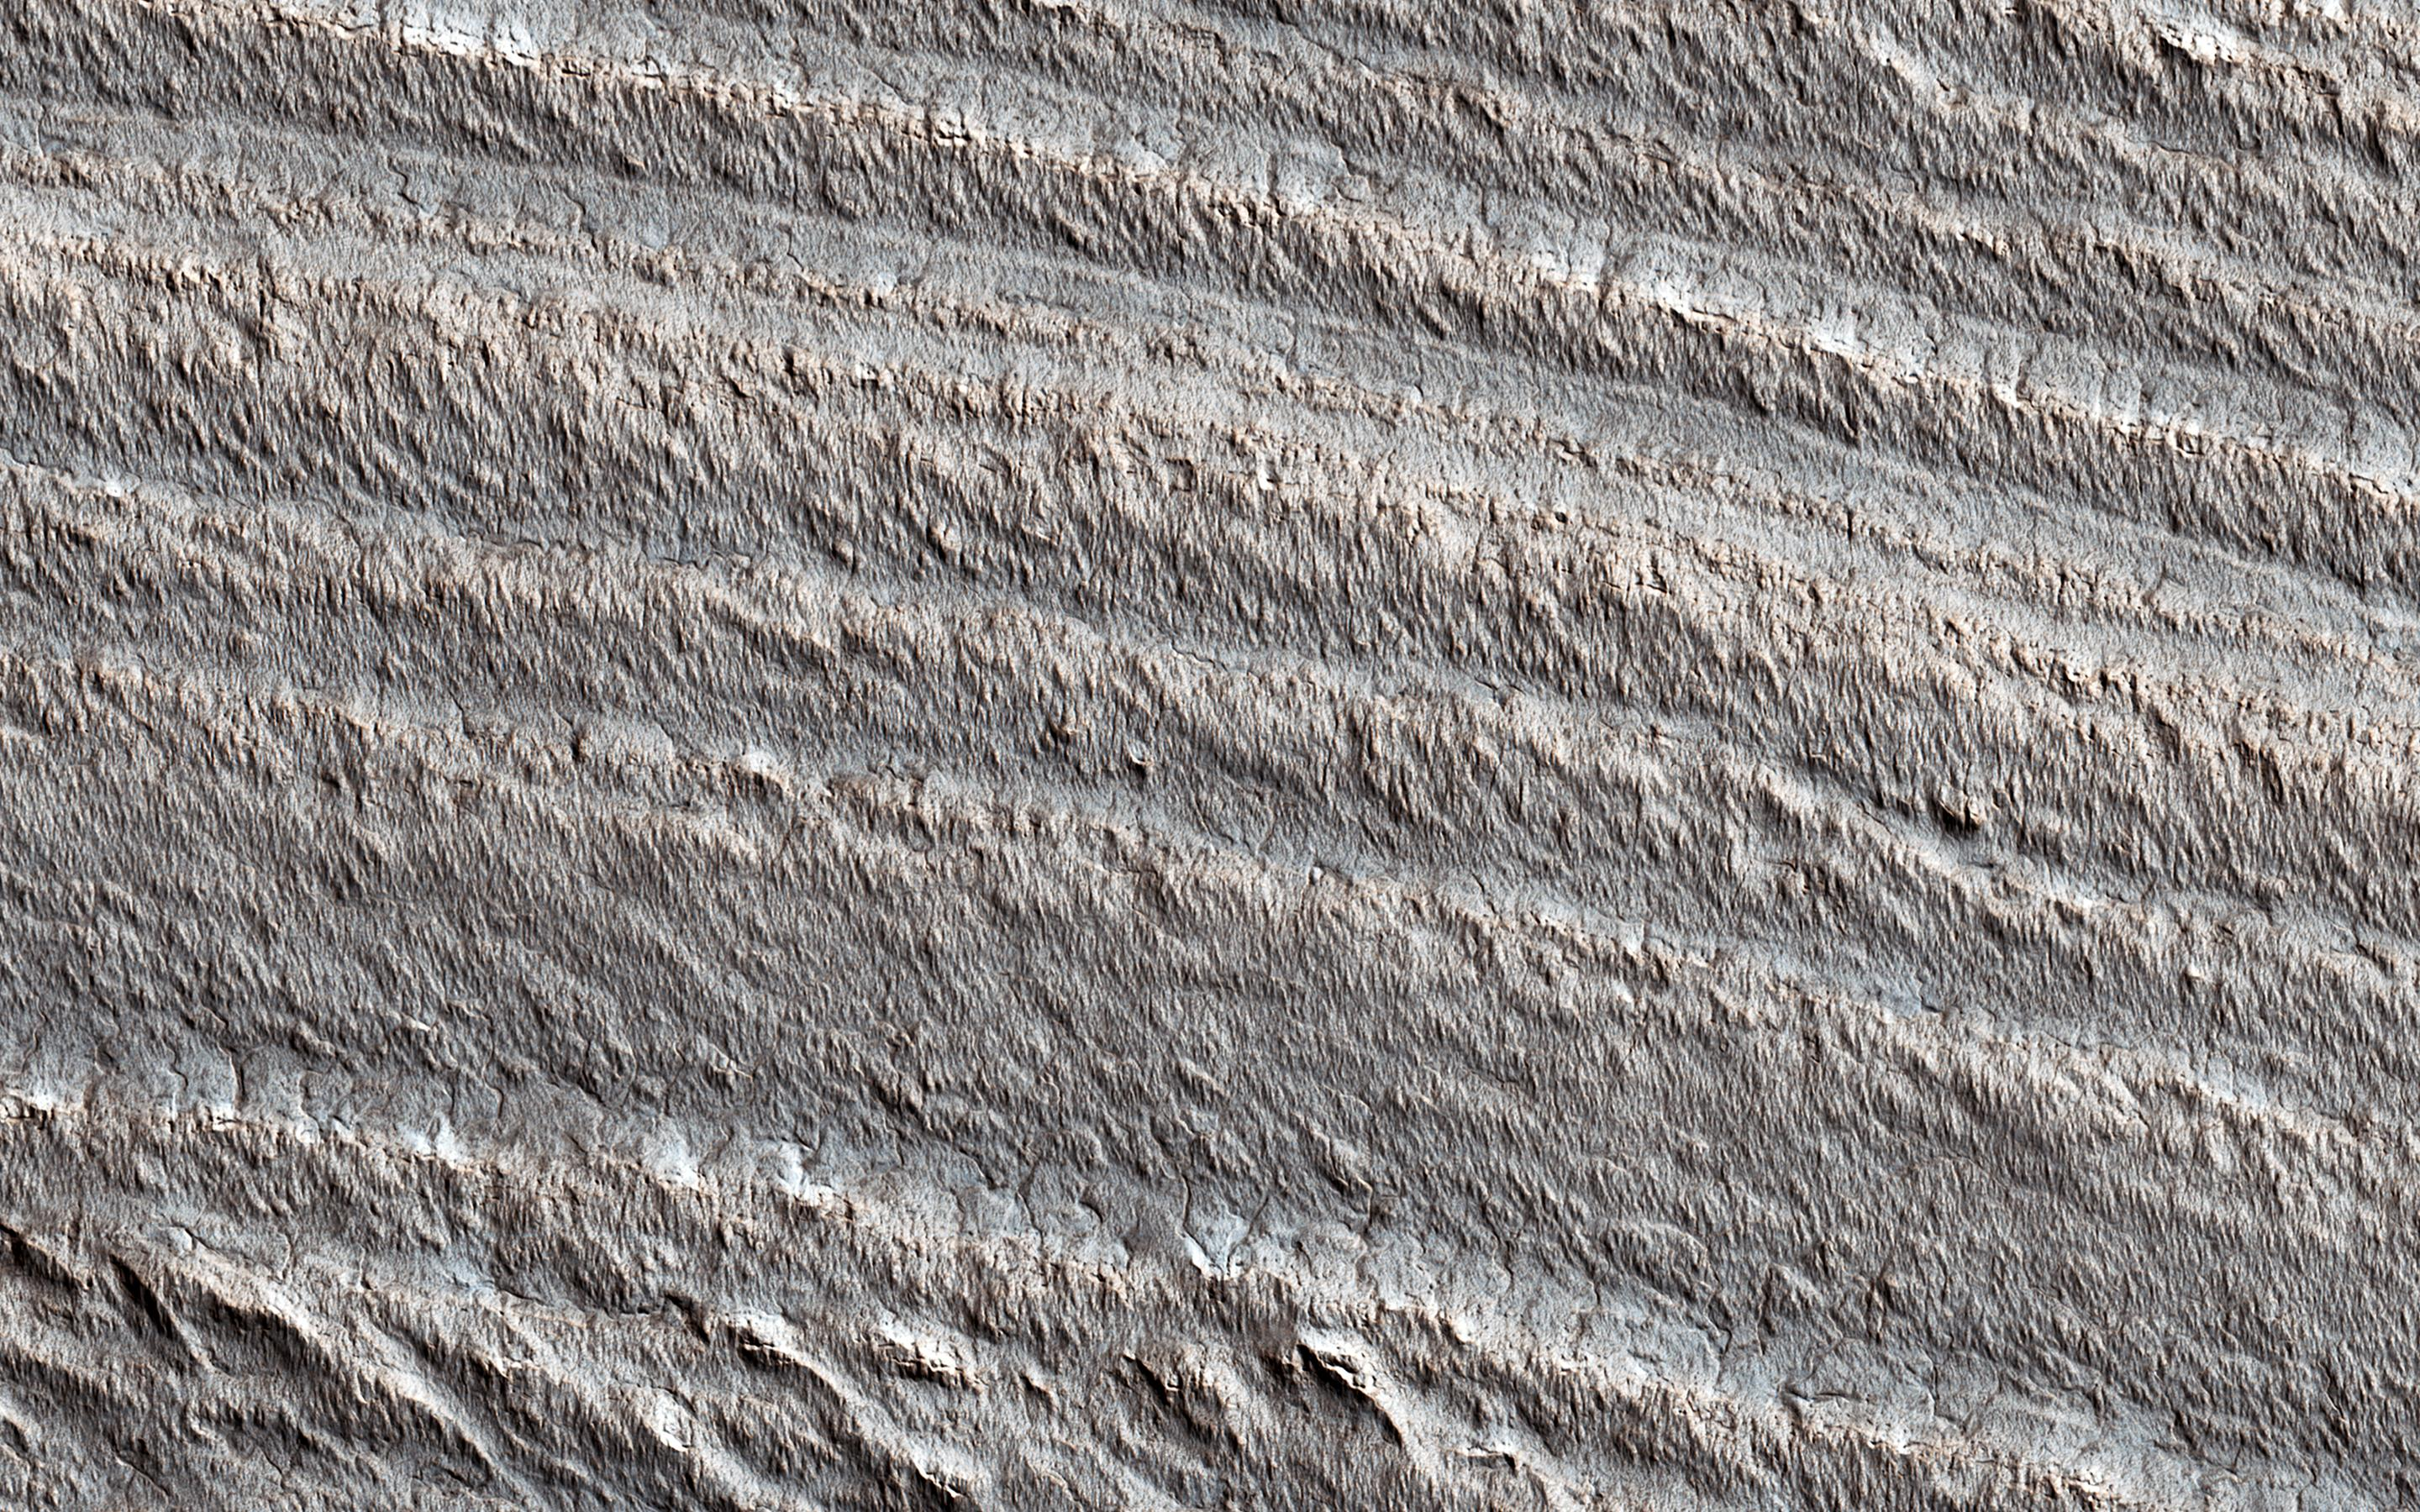 This image acquired on October 23, 2020 by NASAs Mars Reconnaissance Orbiter, shows layering near the base of the south polar layered deposits (SPLD). Radar observations of these deposits show that they are rich in water ice.